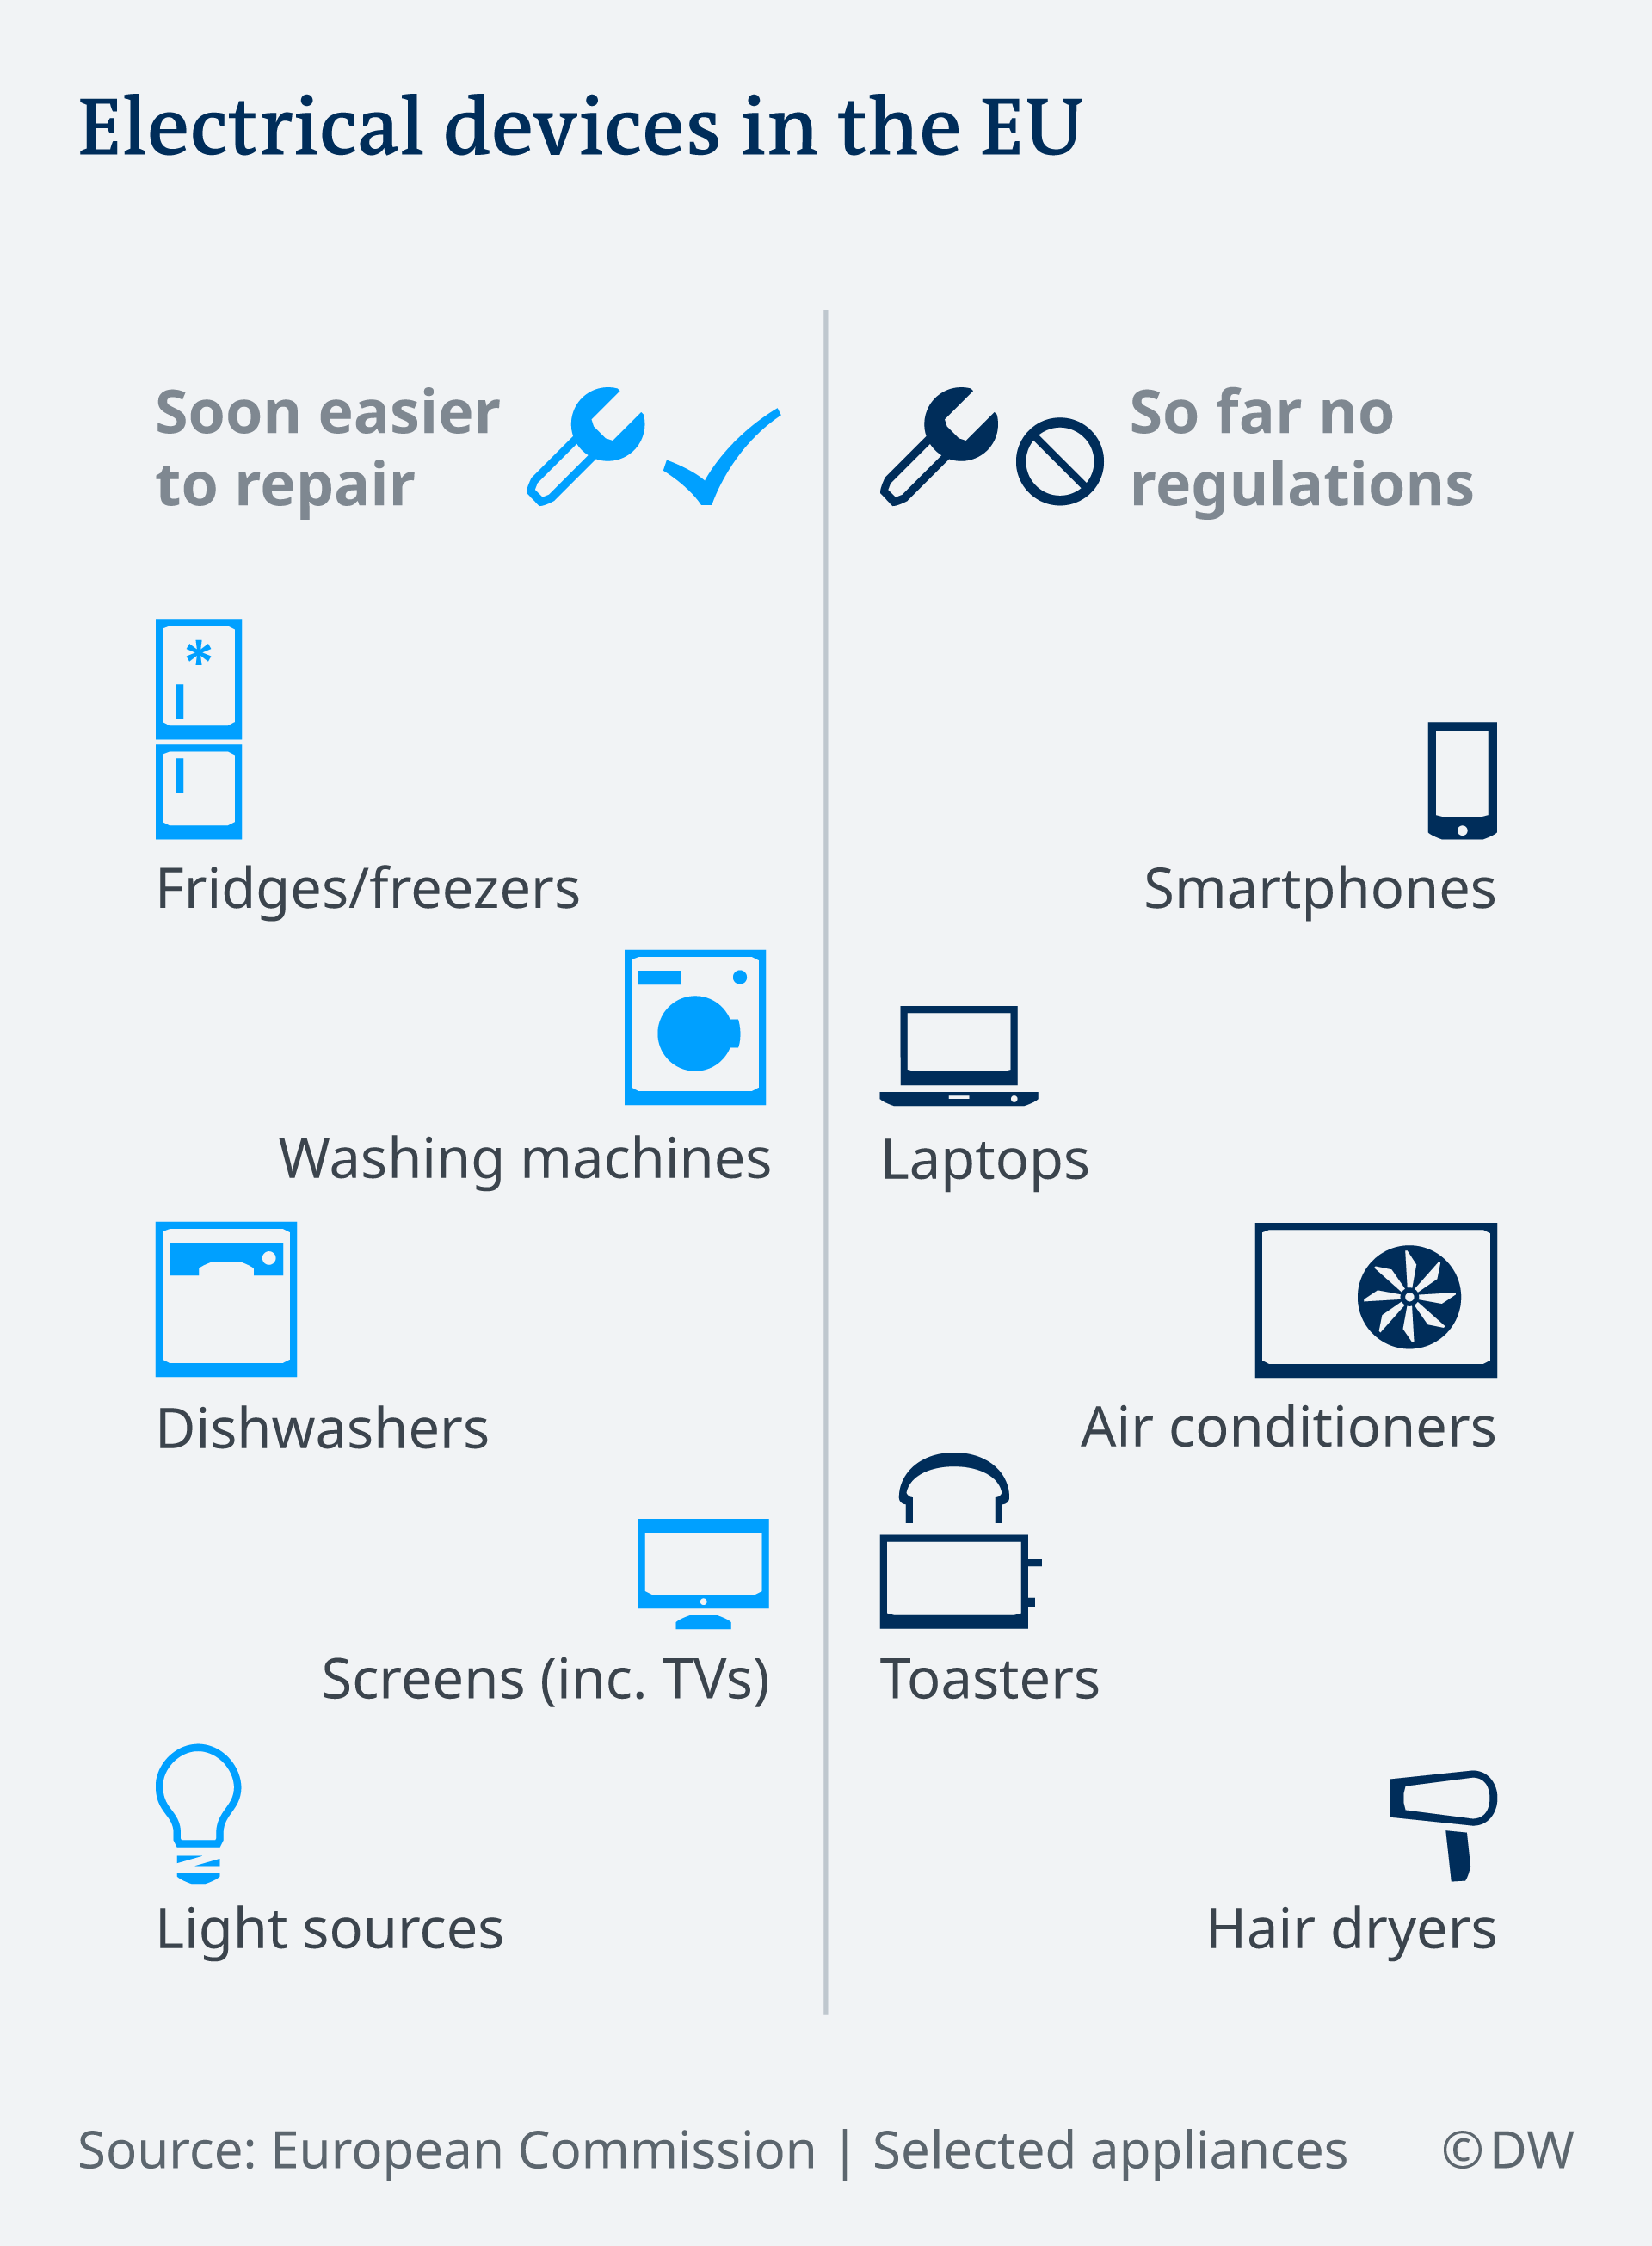 An infographic explaining which devices are included and not included in the EU's easier to repair law